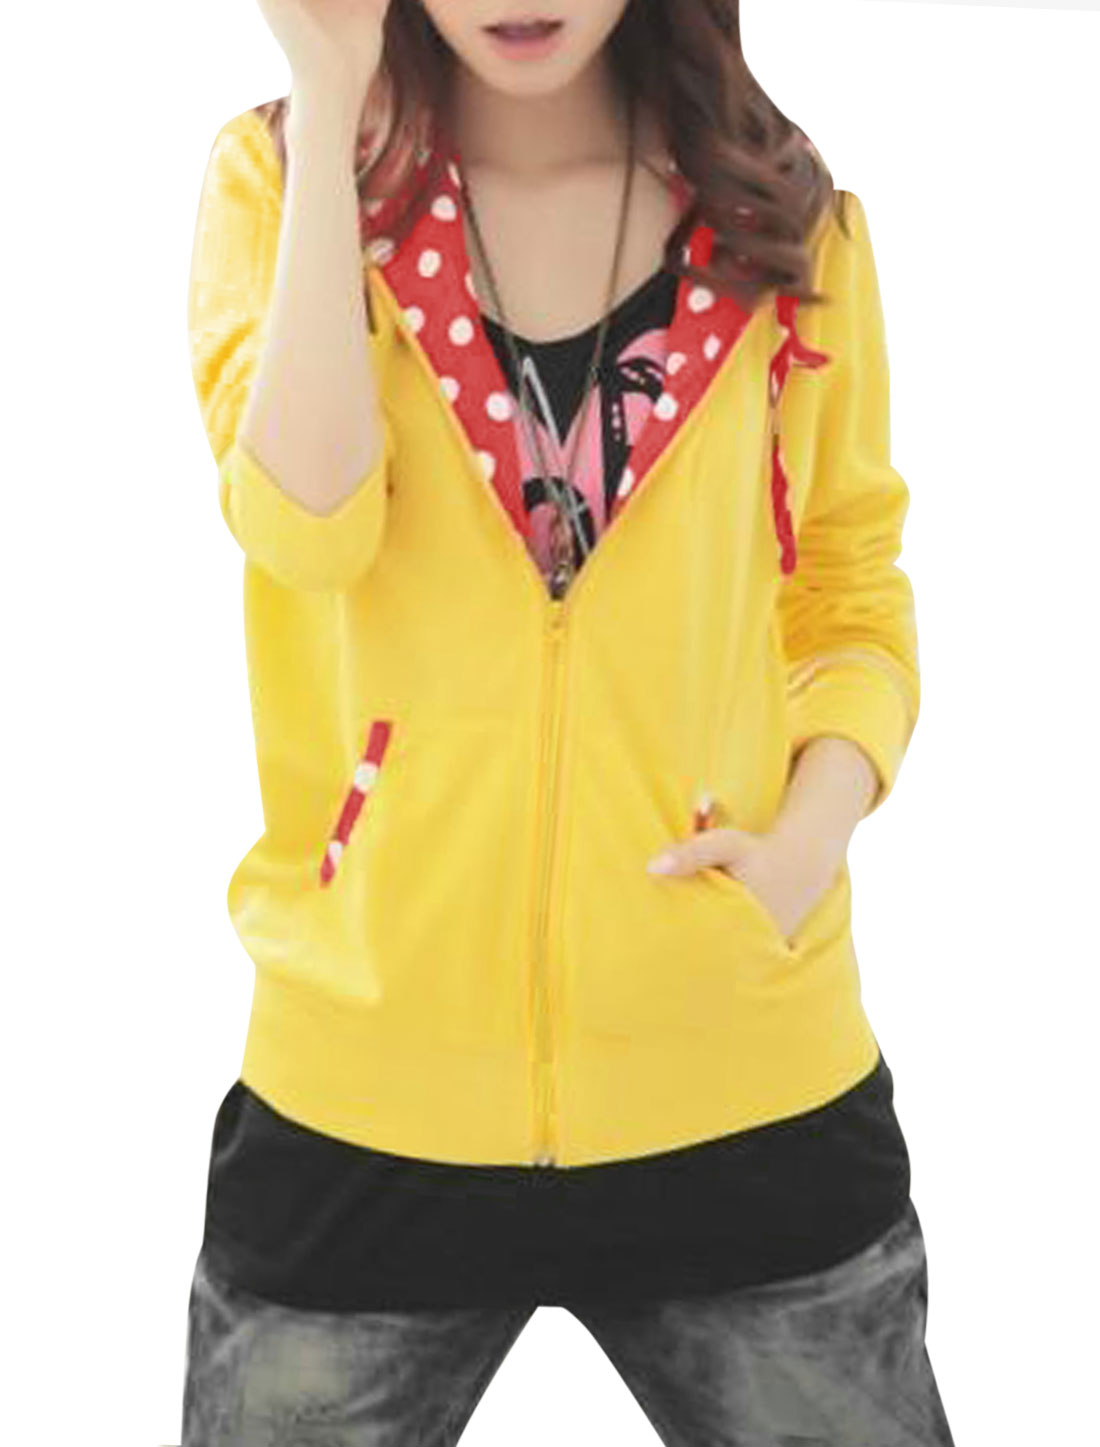 Women Hooded Zip Up Two Front Pockets Stylish Jacket Yellow Red S